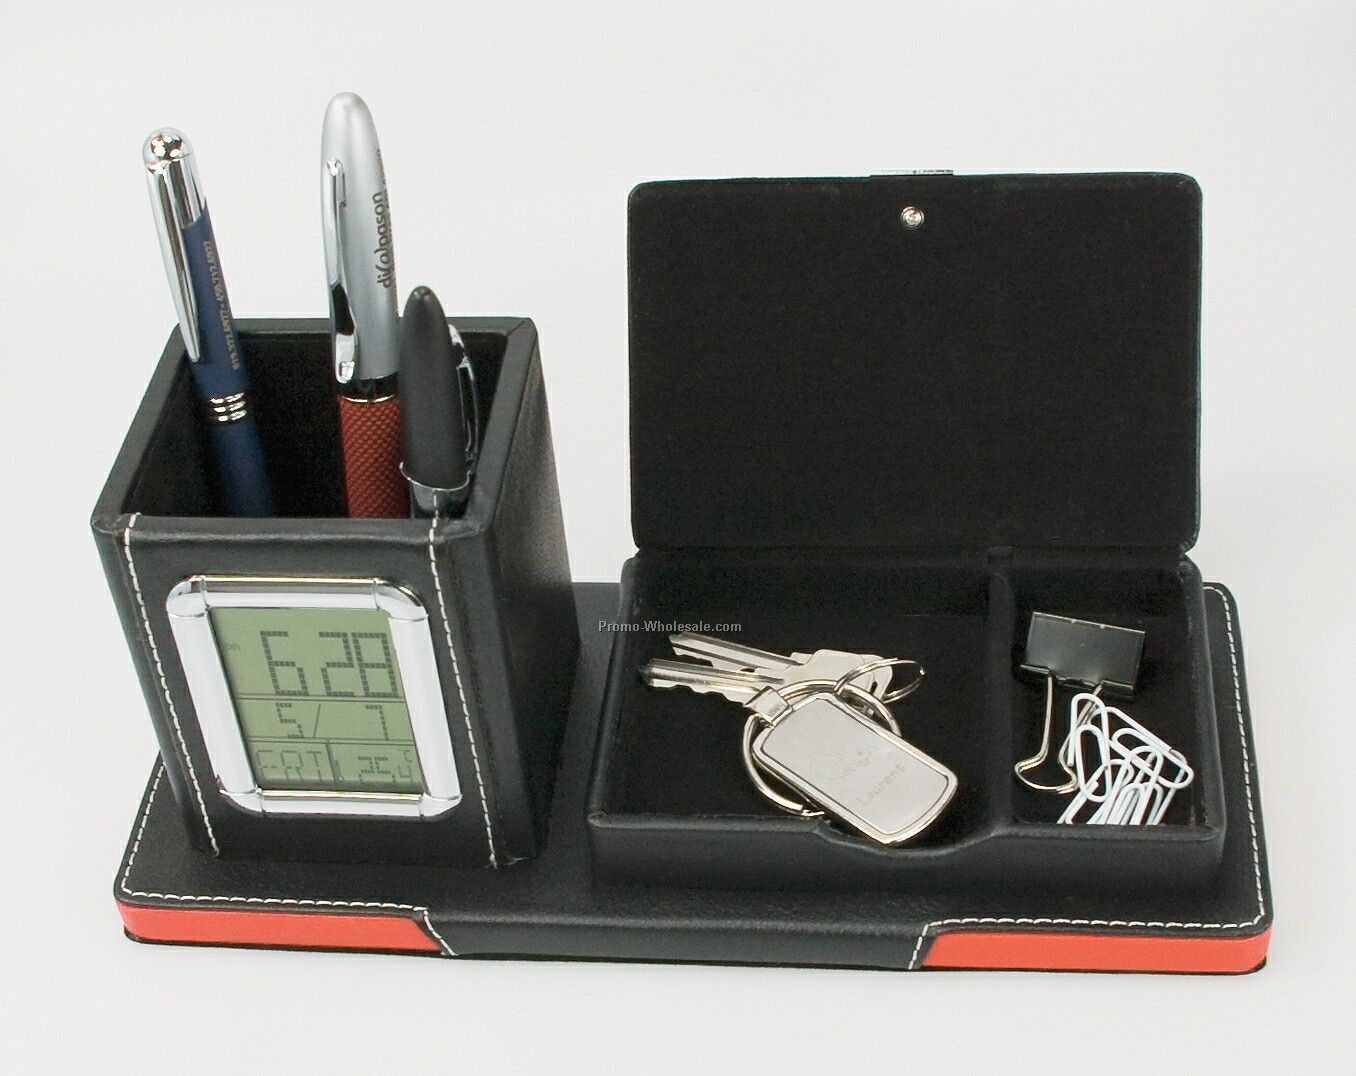 Presidential Series Desk Clock W/ Pen Holder & Storage Compartment